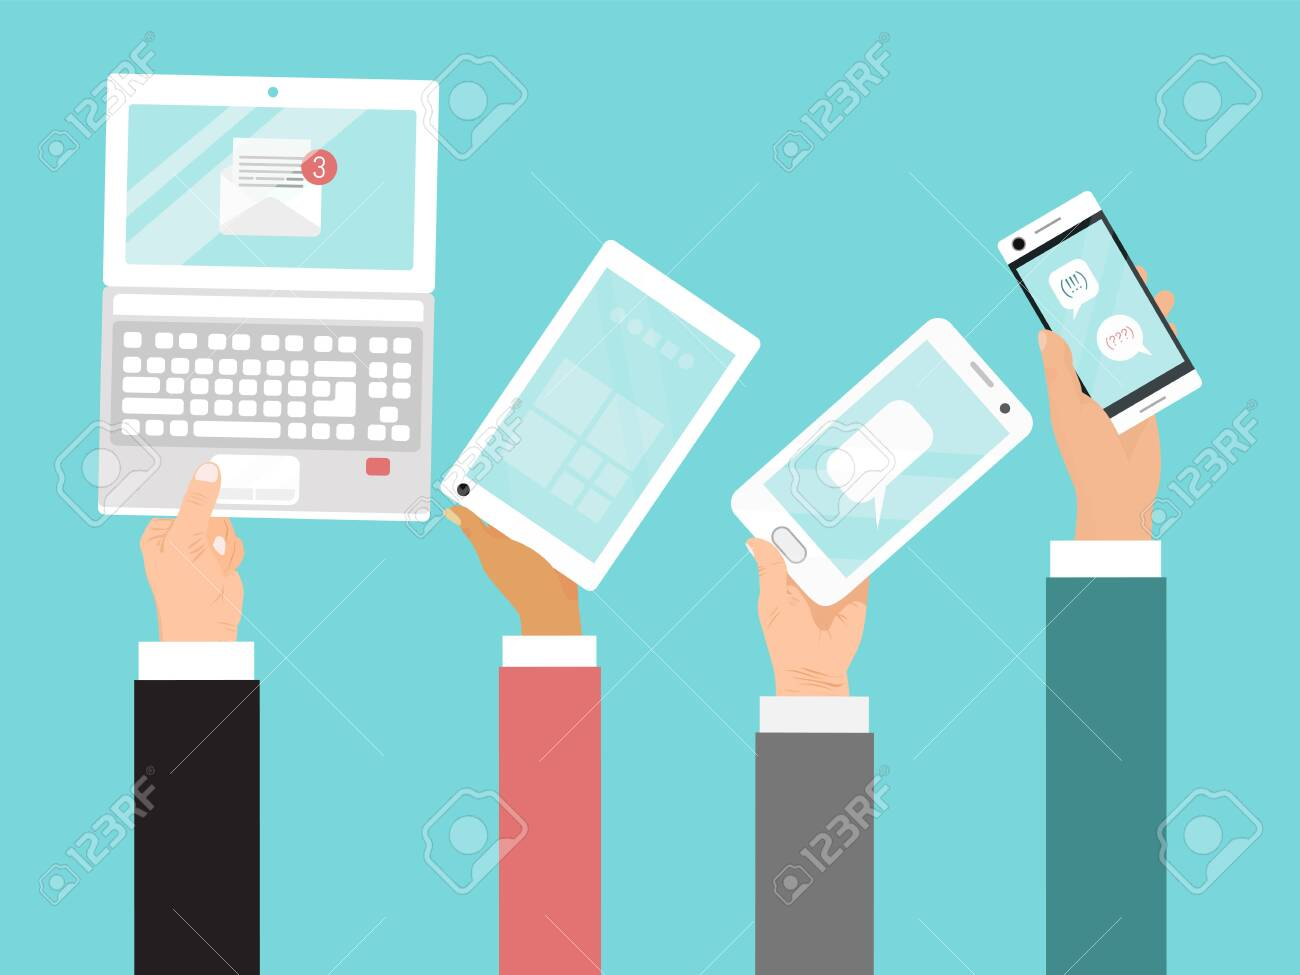 Hands holding different devices vector illustration. Business internet communications by laptop, mobile phone and tablet. - 138170366